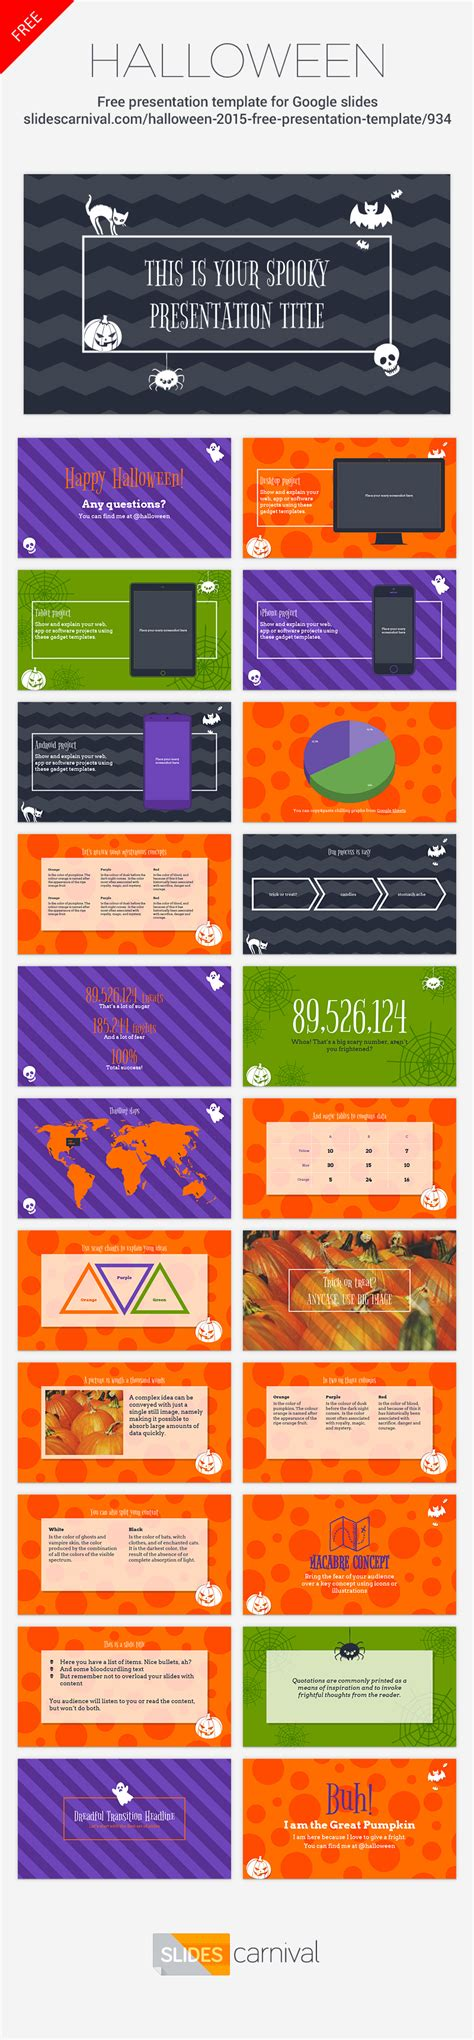 Which Template To Use For Celeberate It Place Cards by Celebrate It Templates Images Gt Gt Card Template Free